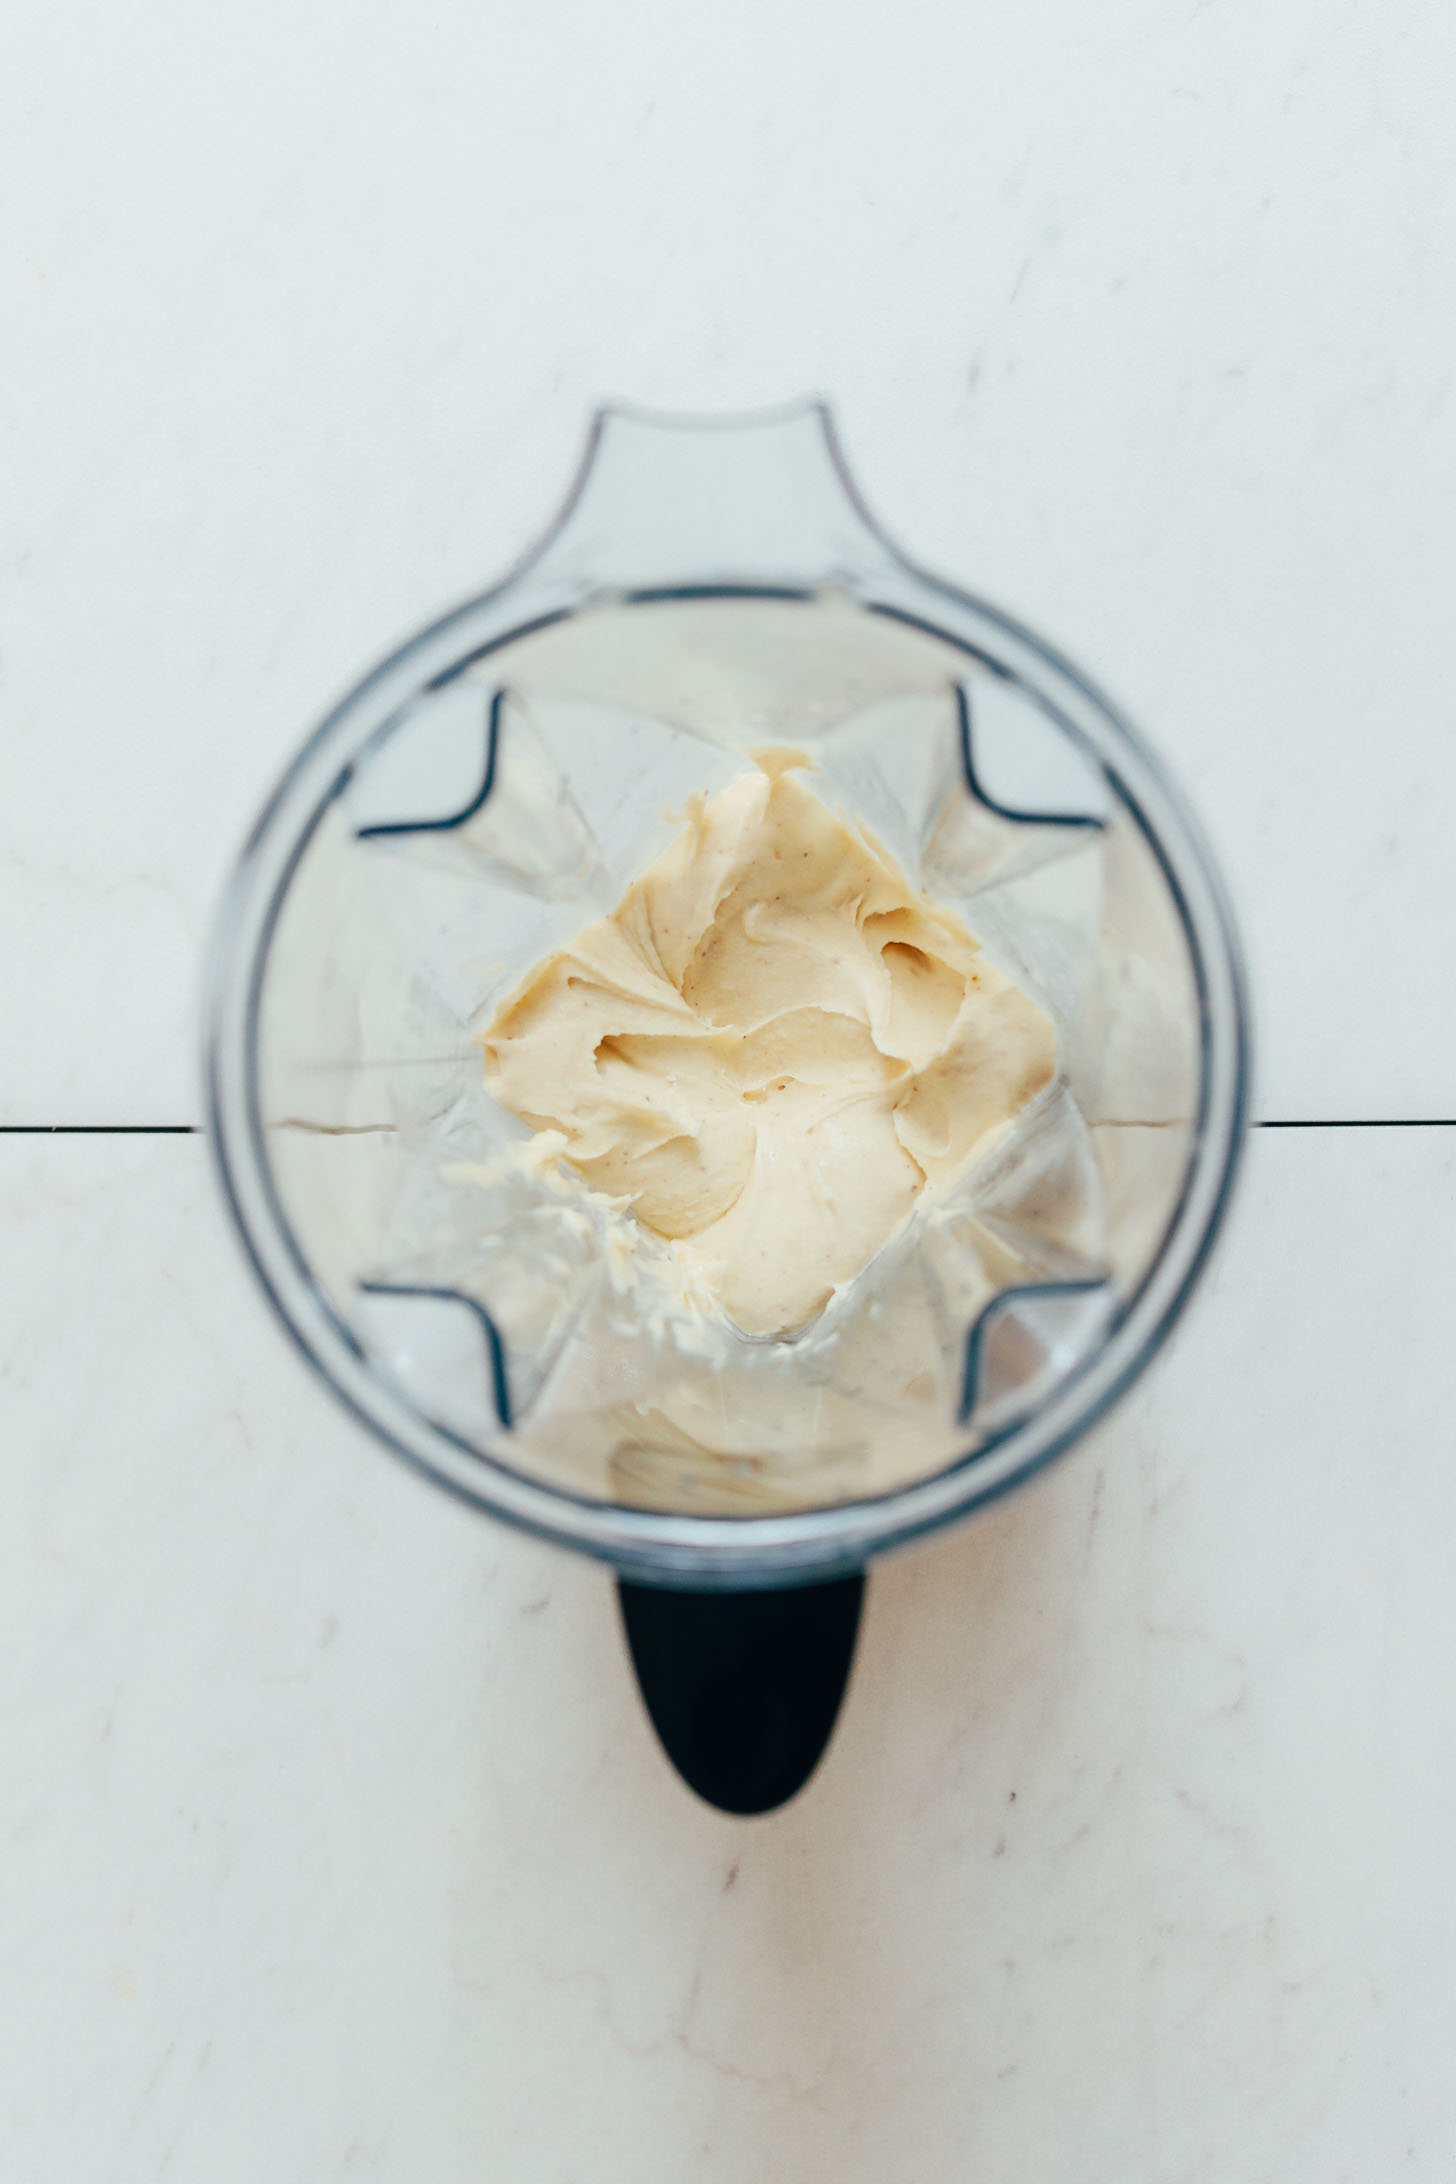 Banana Nice Cream in a Vitamix blender